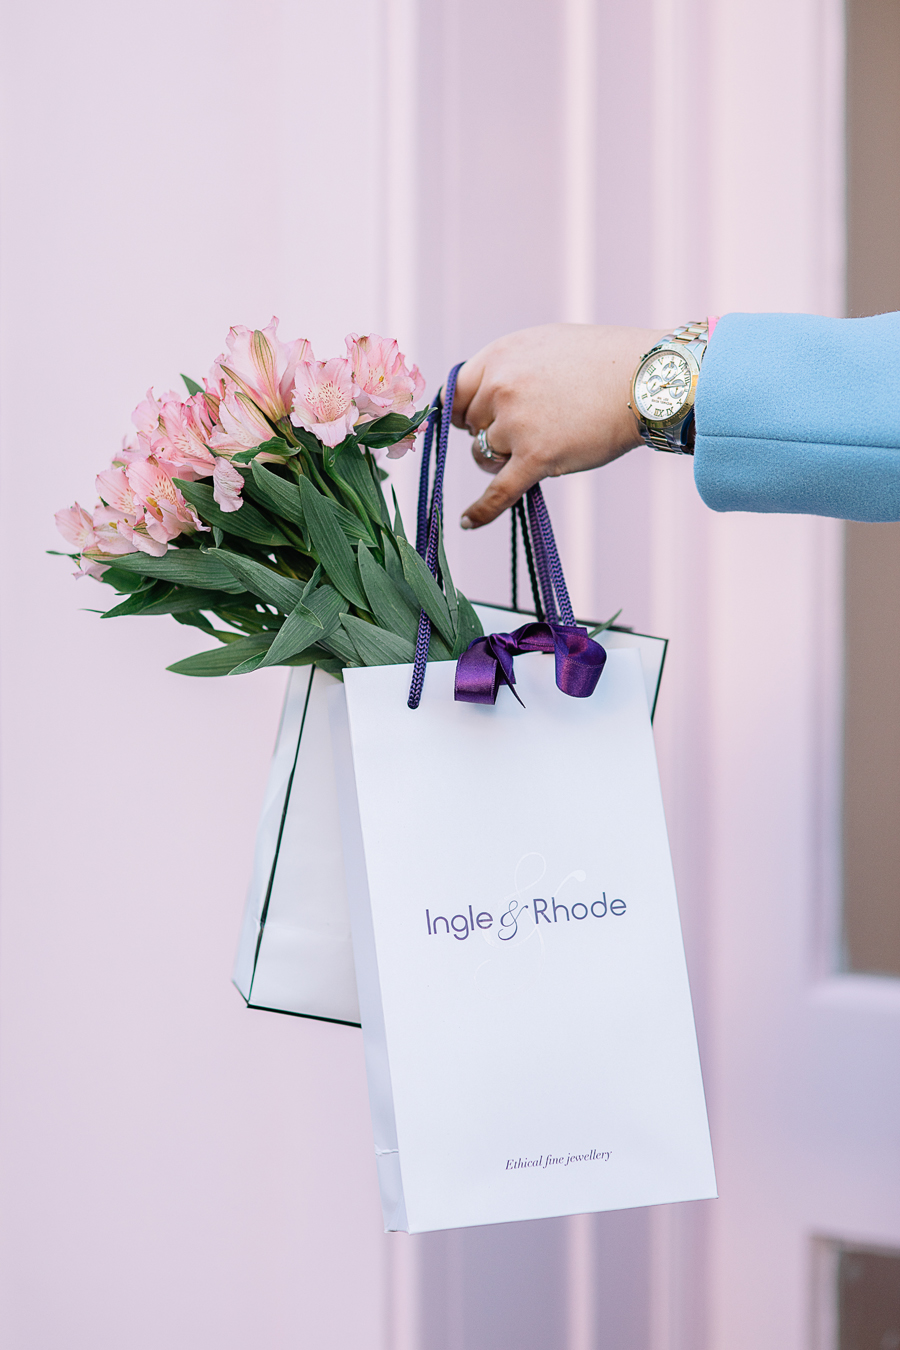 beautiful shopping bags Ingle & rhode